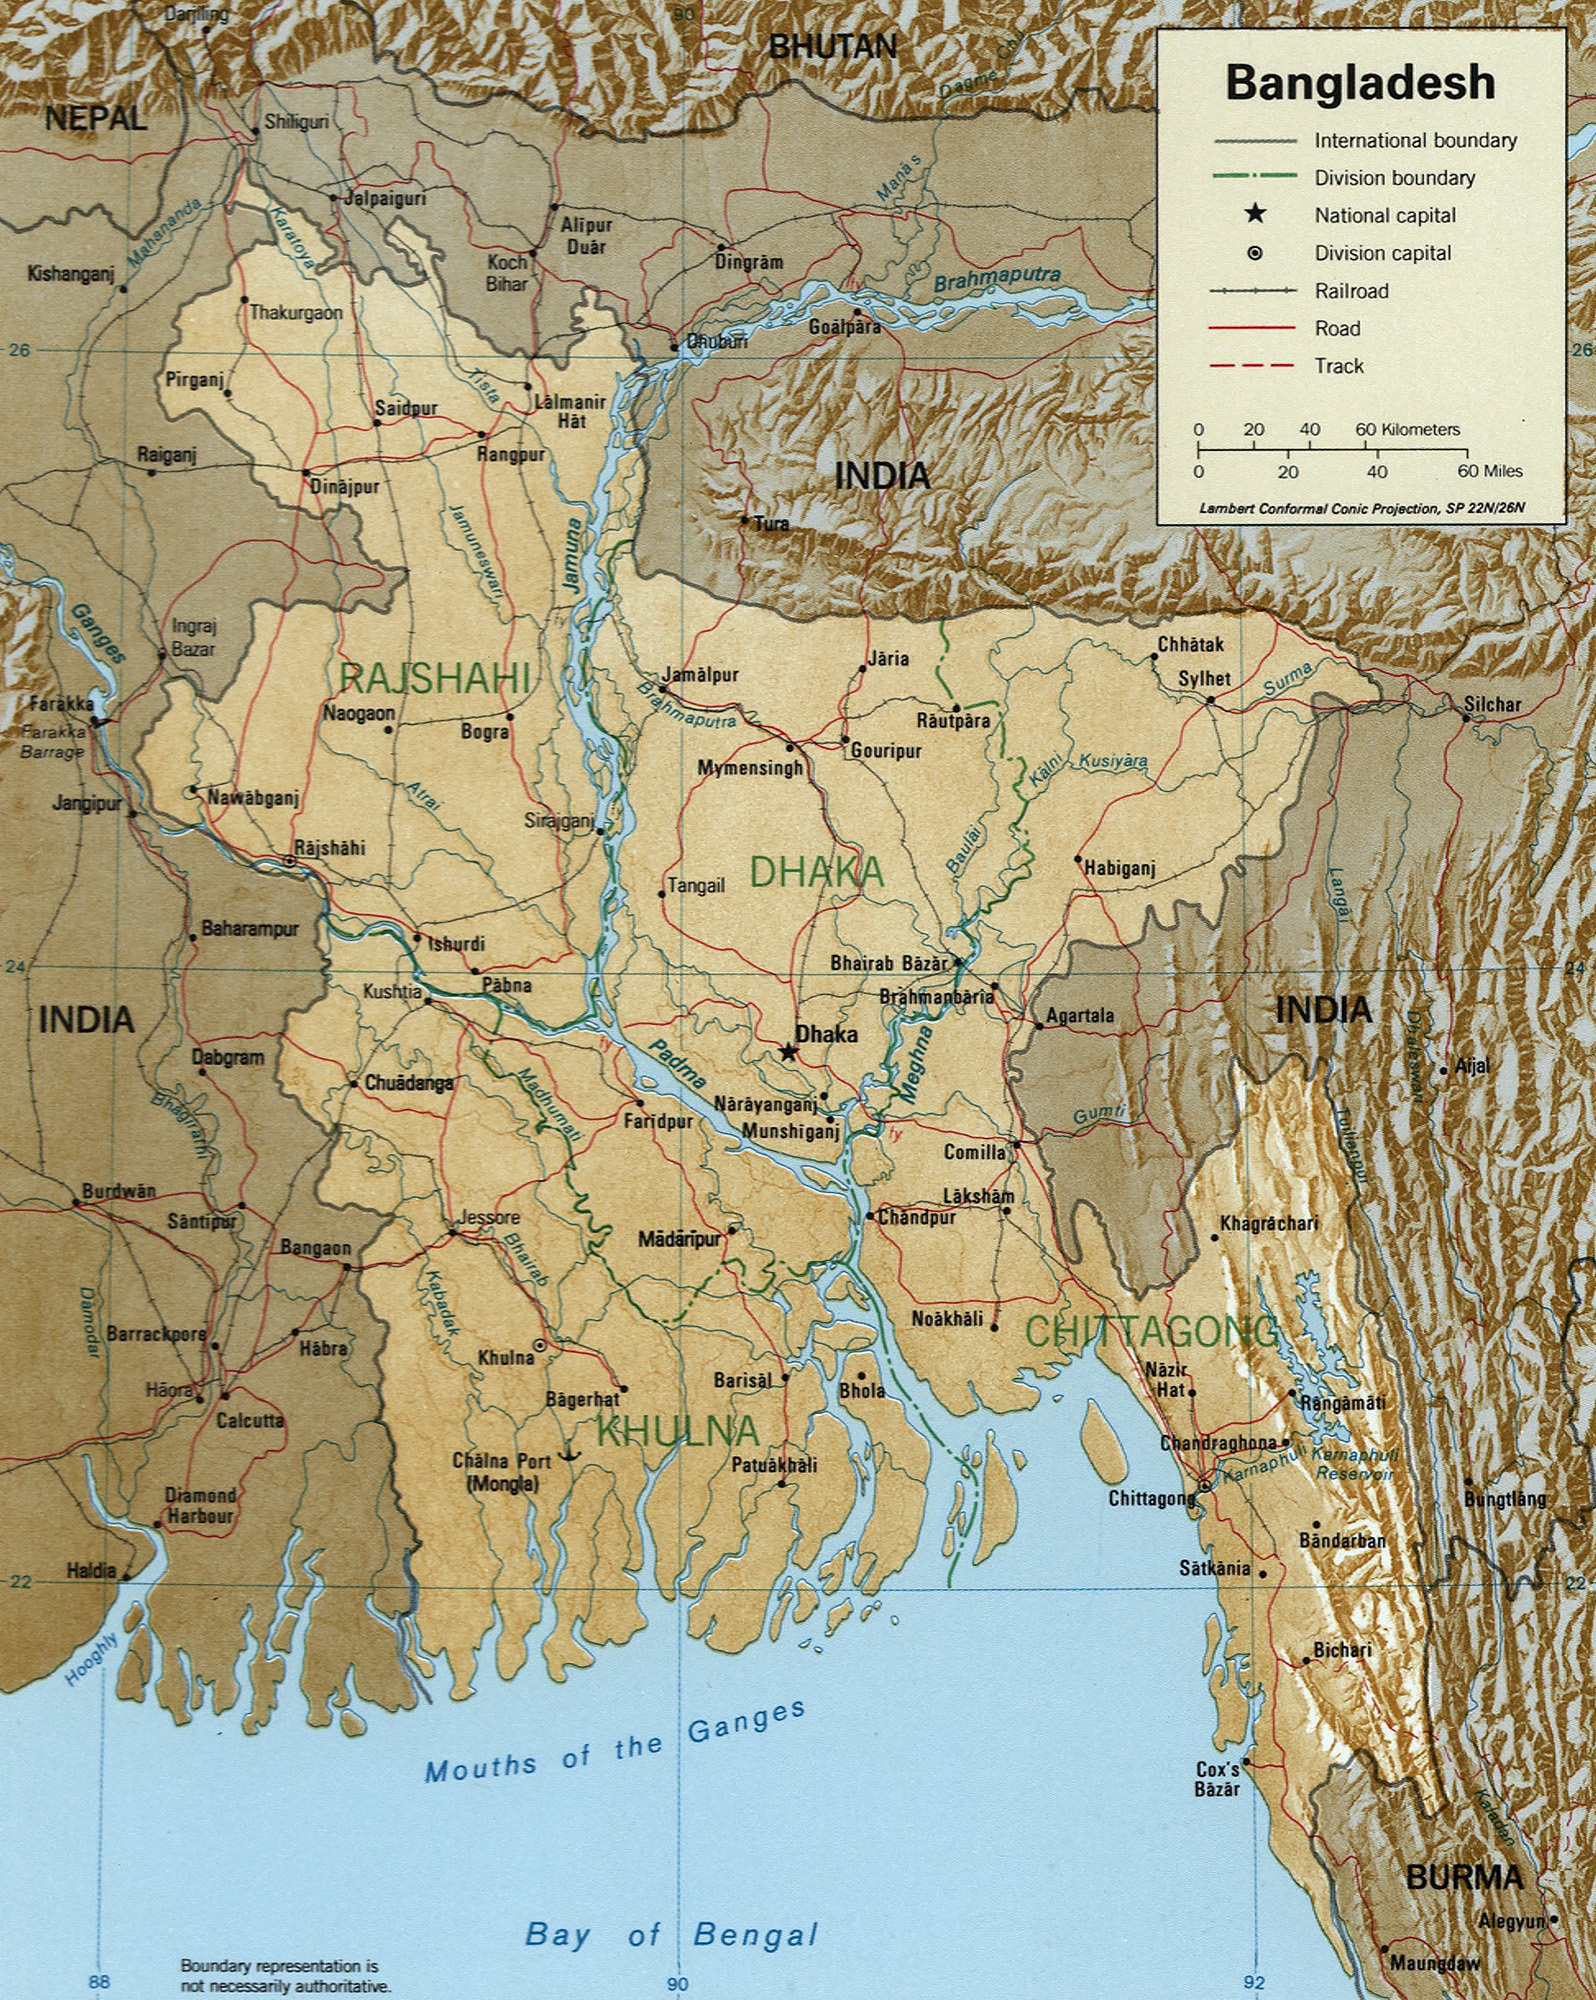 005 Essay On Rivers Of Bangladesh Example Loc 1996 Map Breathtaking Importance In Full